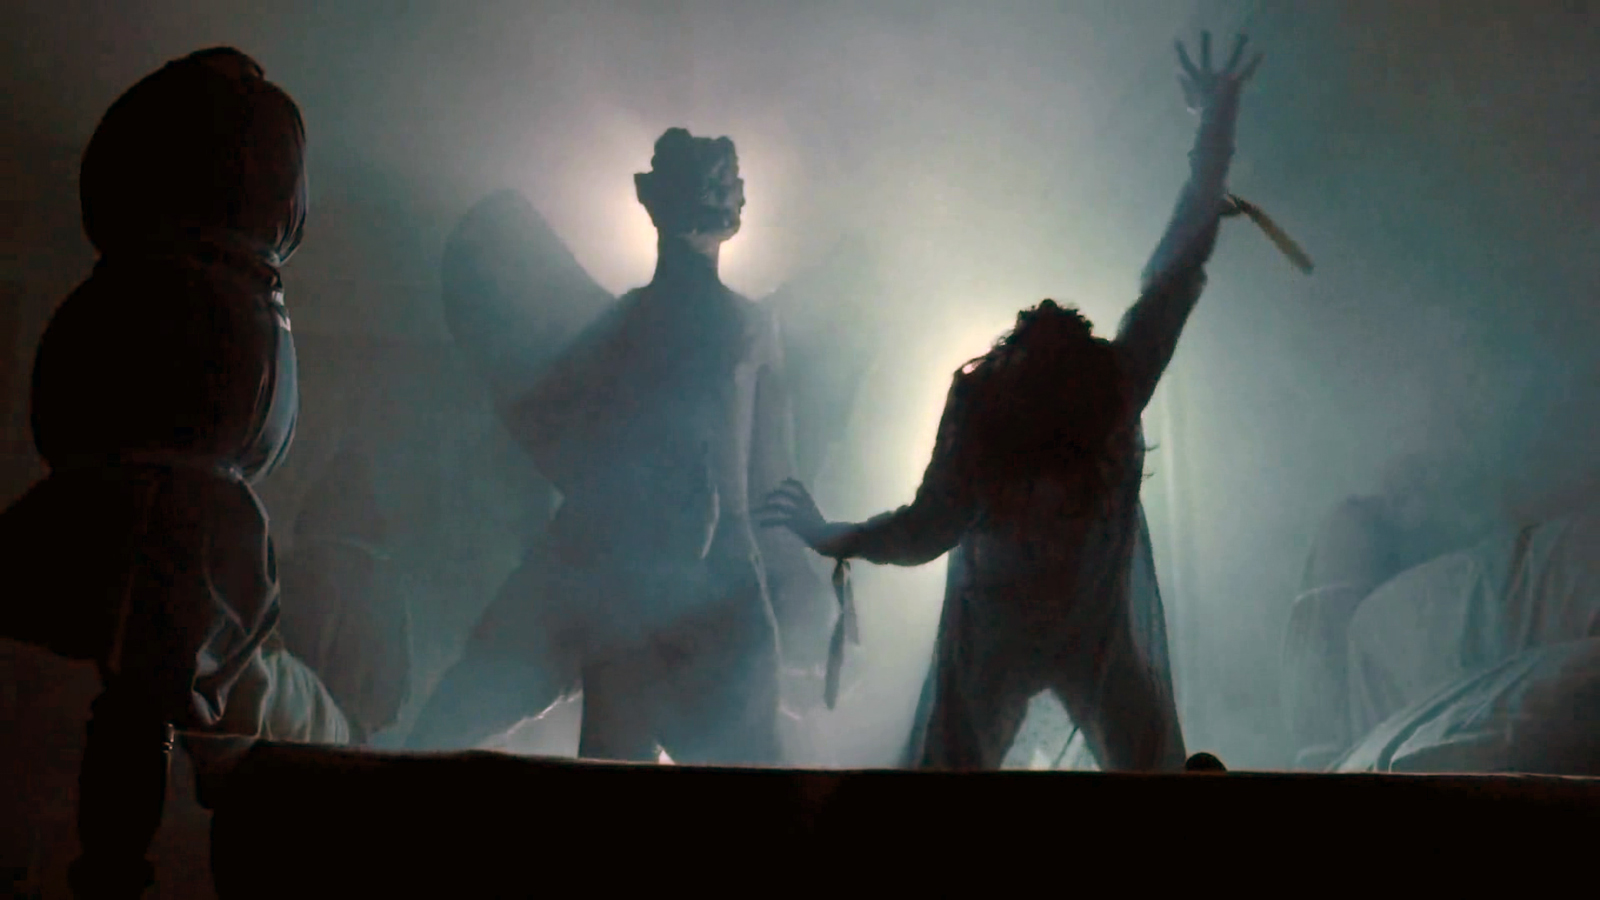 scene from The Exorcist, Regan and Pazuzu